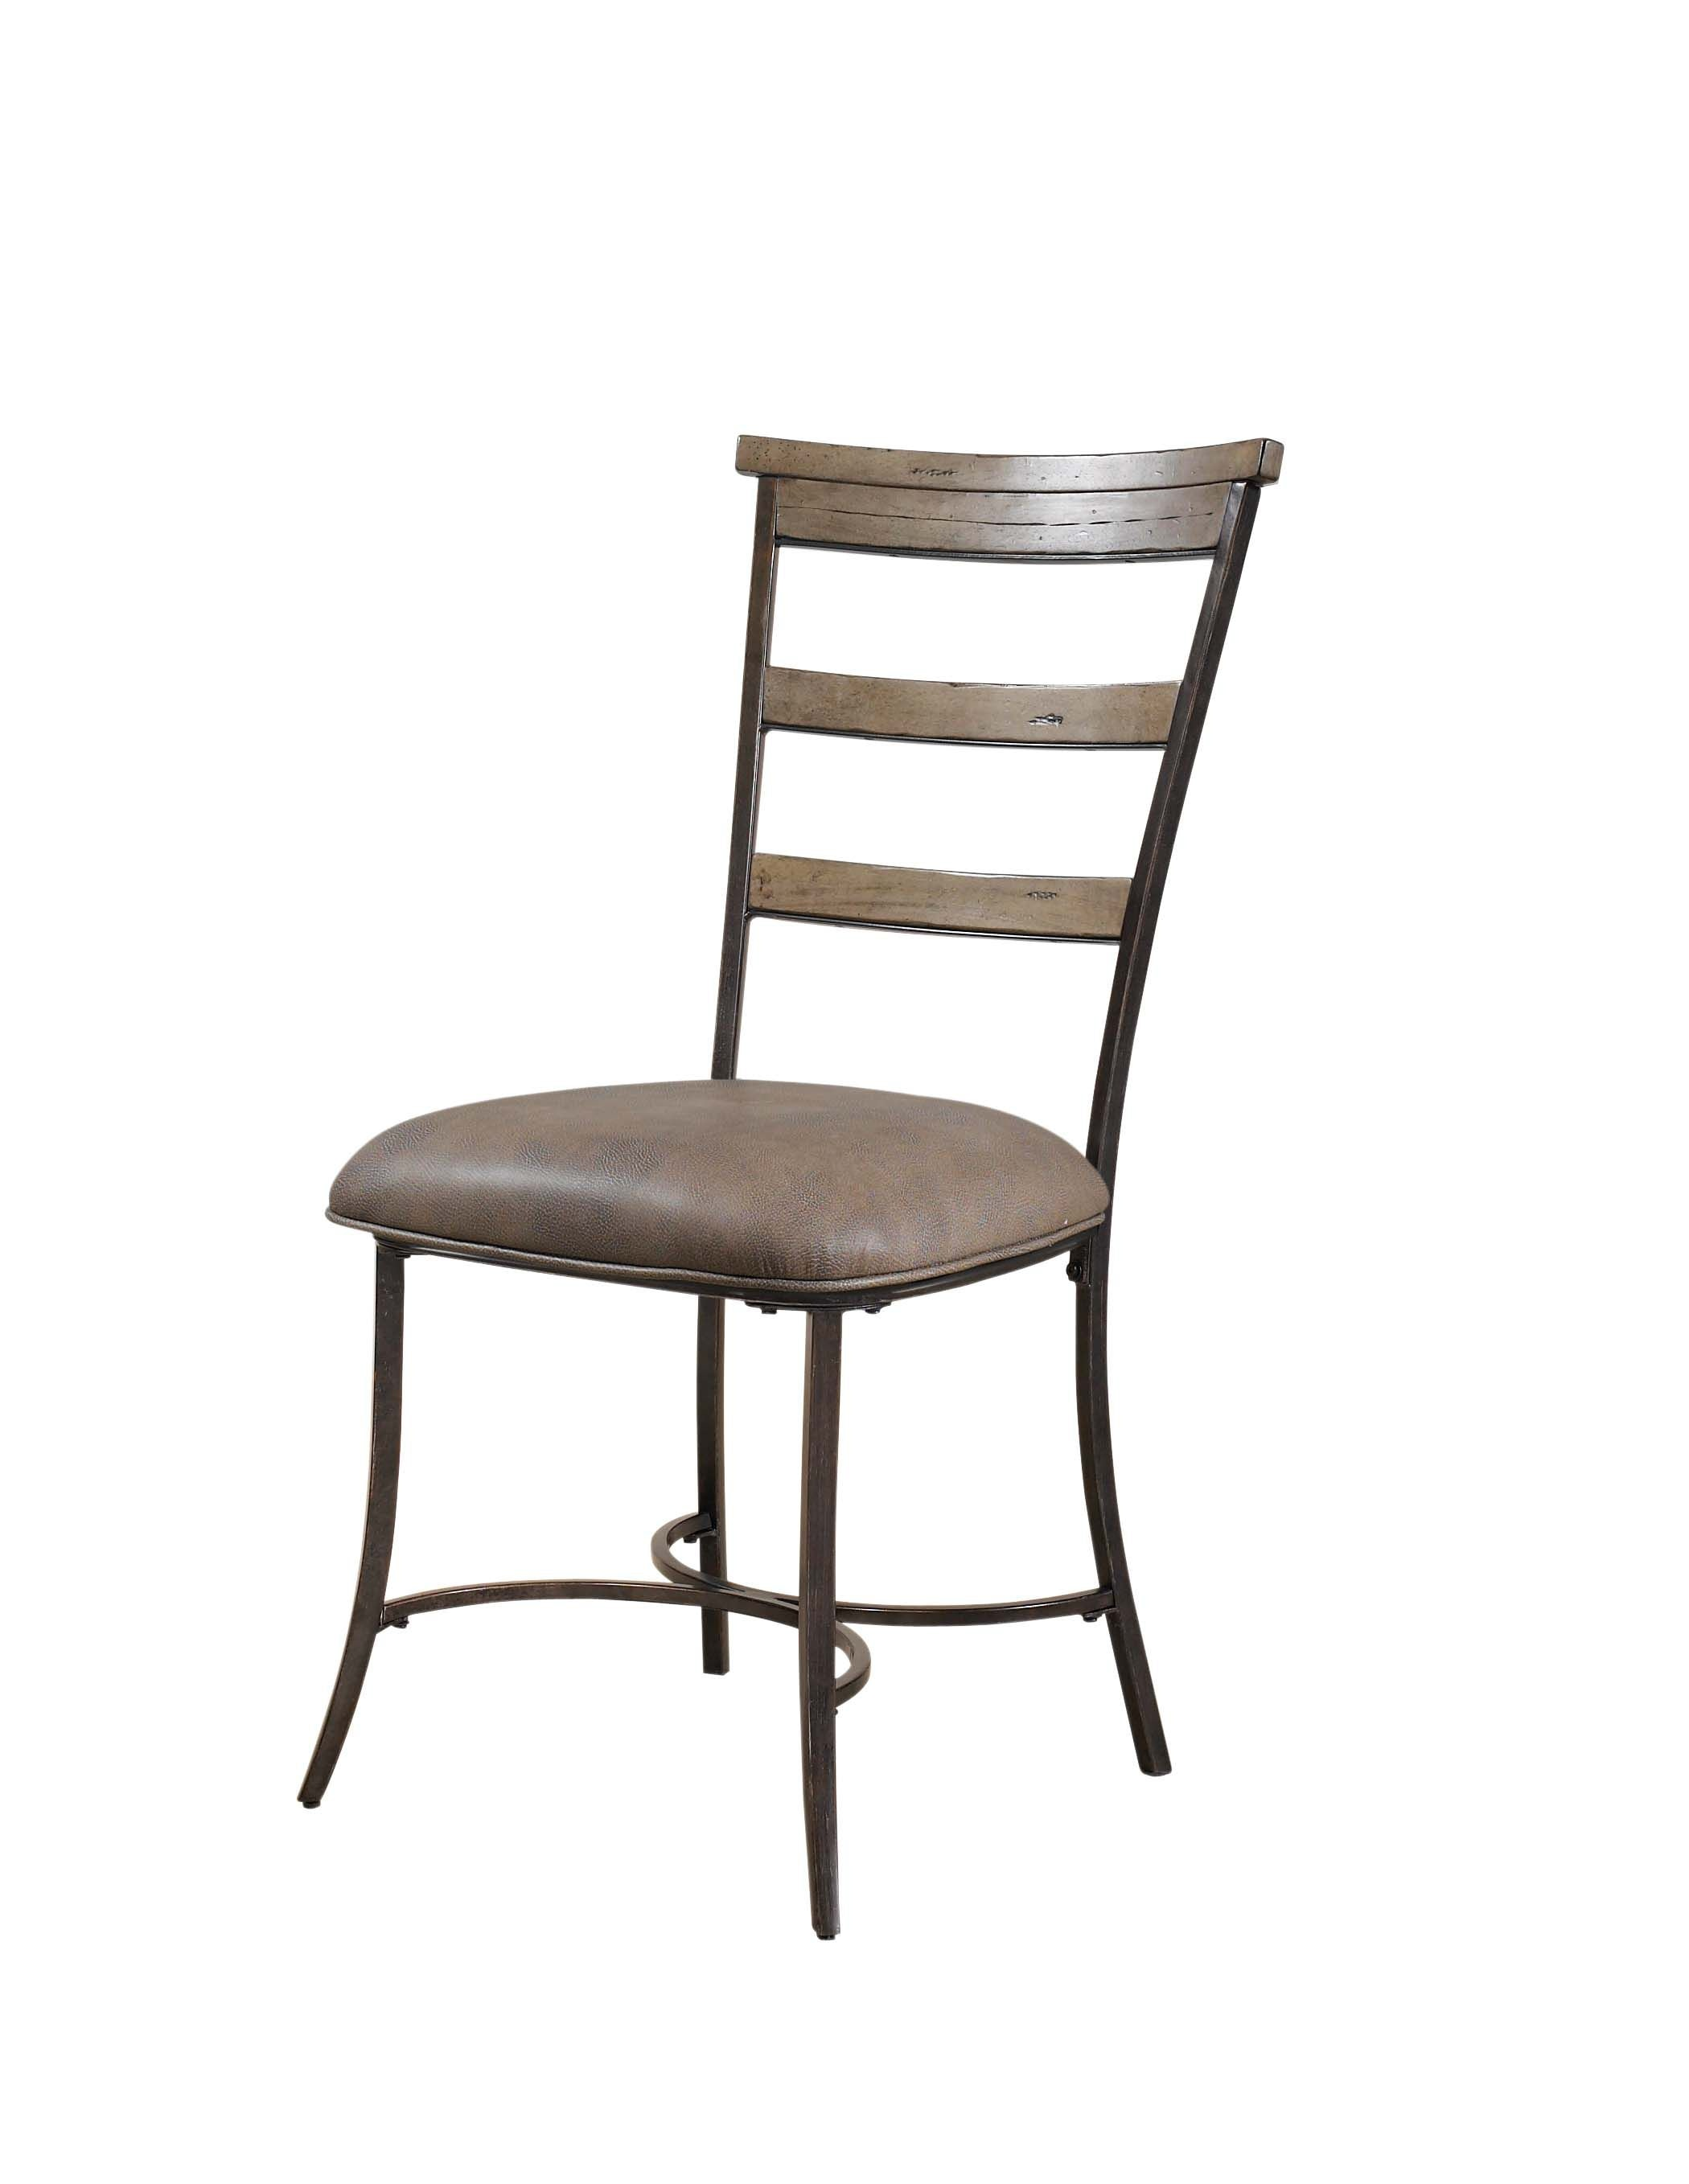 Hillsdale Furniture Dining Room Charleston Ladder Back Dining Chair  4670 805 At Carol House Furniture